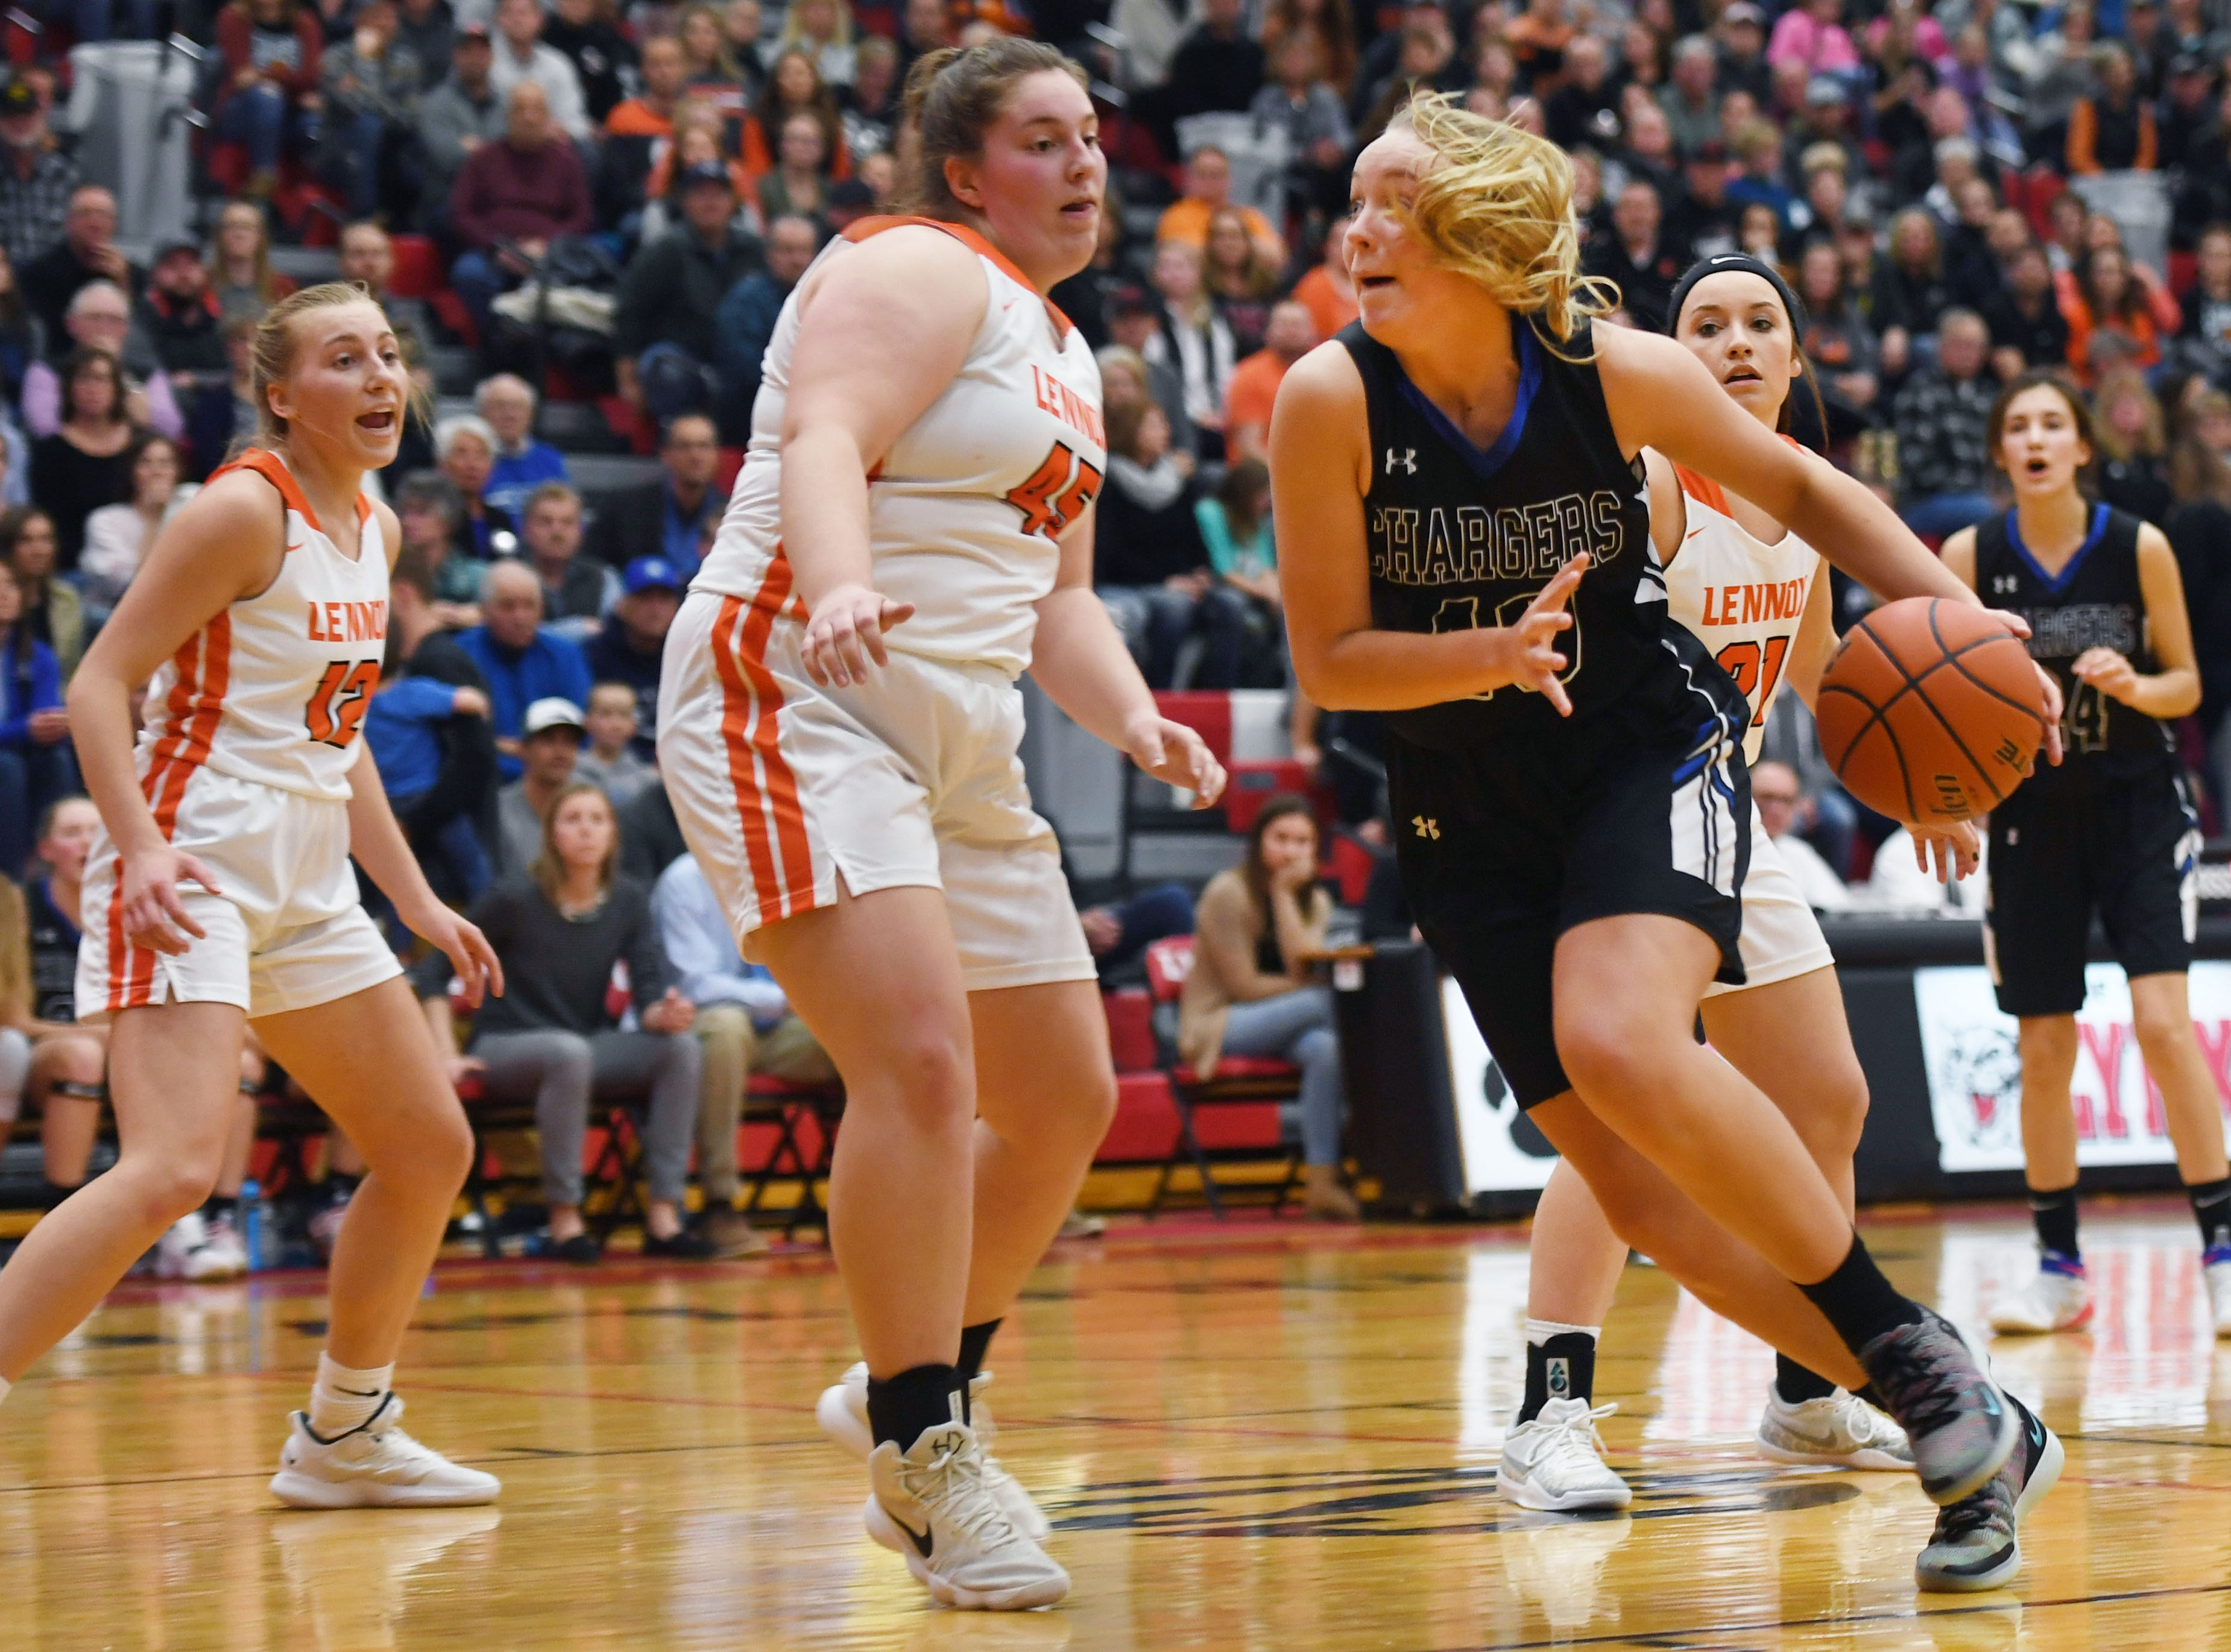 Sioux Falls Christian's Lauren Tims goes against Lennox defense during the game Thursday, March 7, at Brandon Valley High School in Brandon Valley.